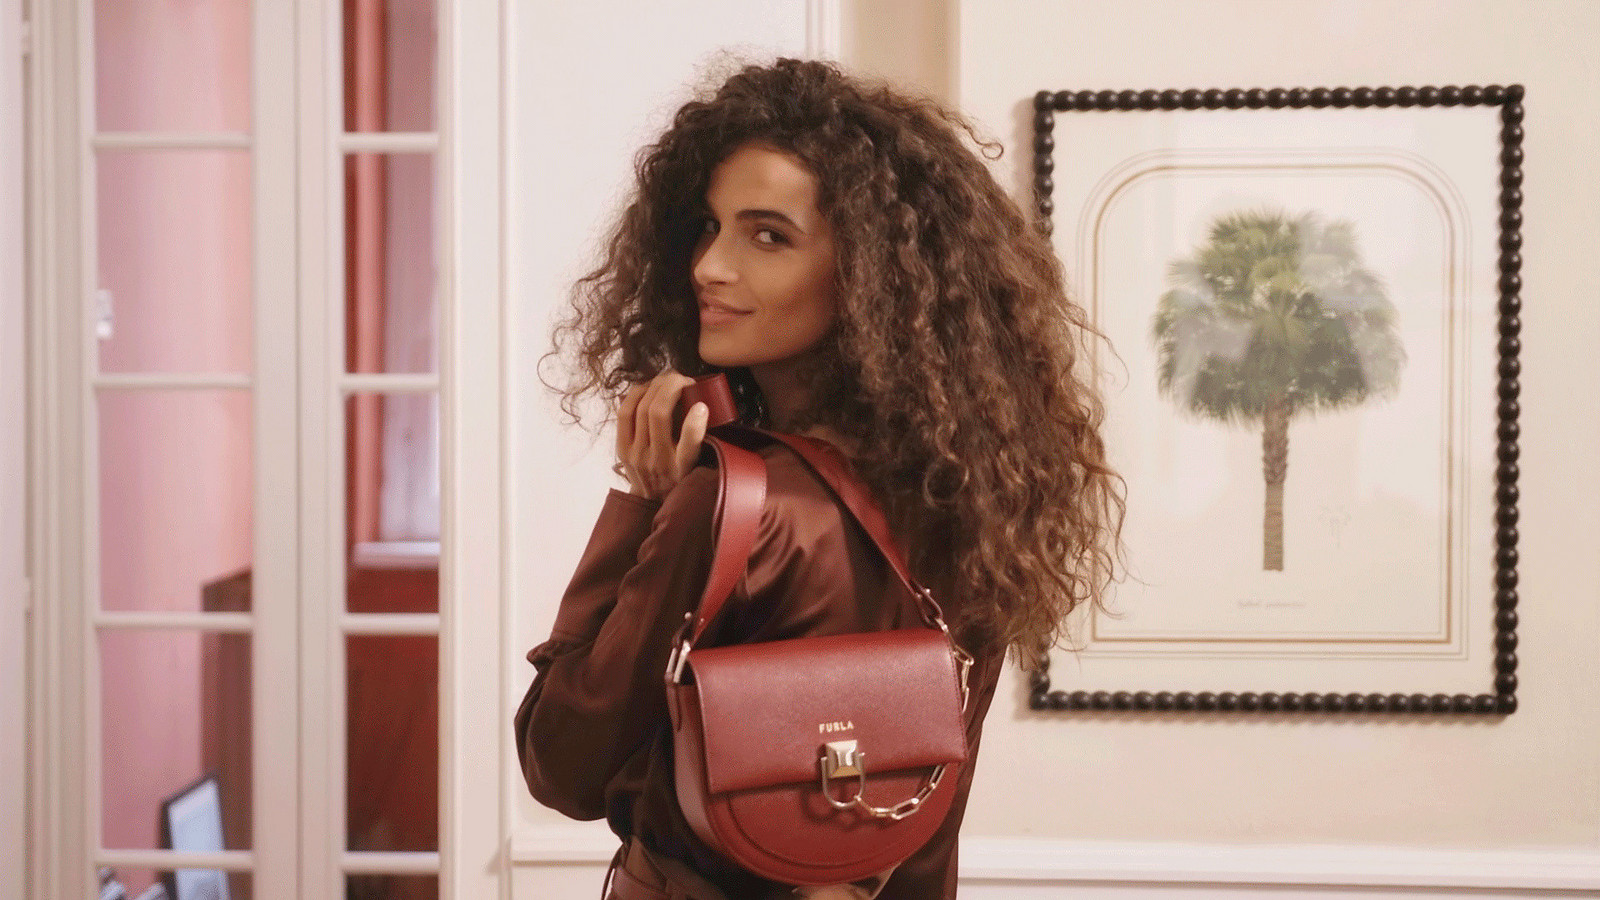 The actress and model Chiara Scelsi is in her Milan apartment, she is holding over the shoulder the new Furla Miss Mimì colorblock.  She's wearing a burgundy sild shirt and smiling at the camera.